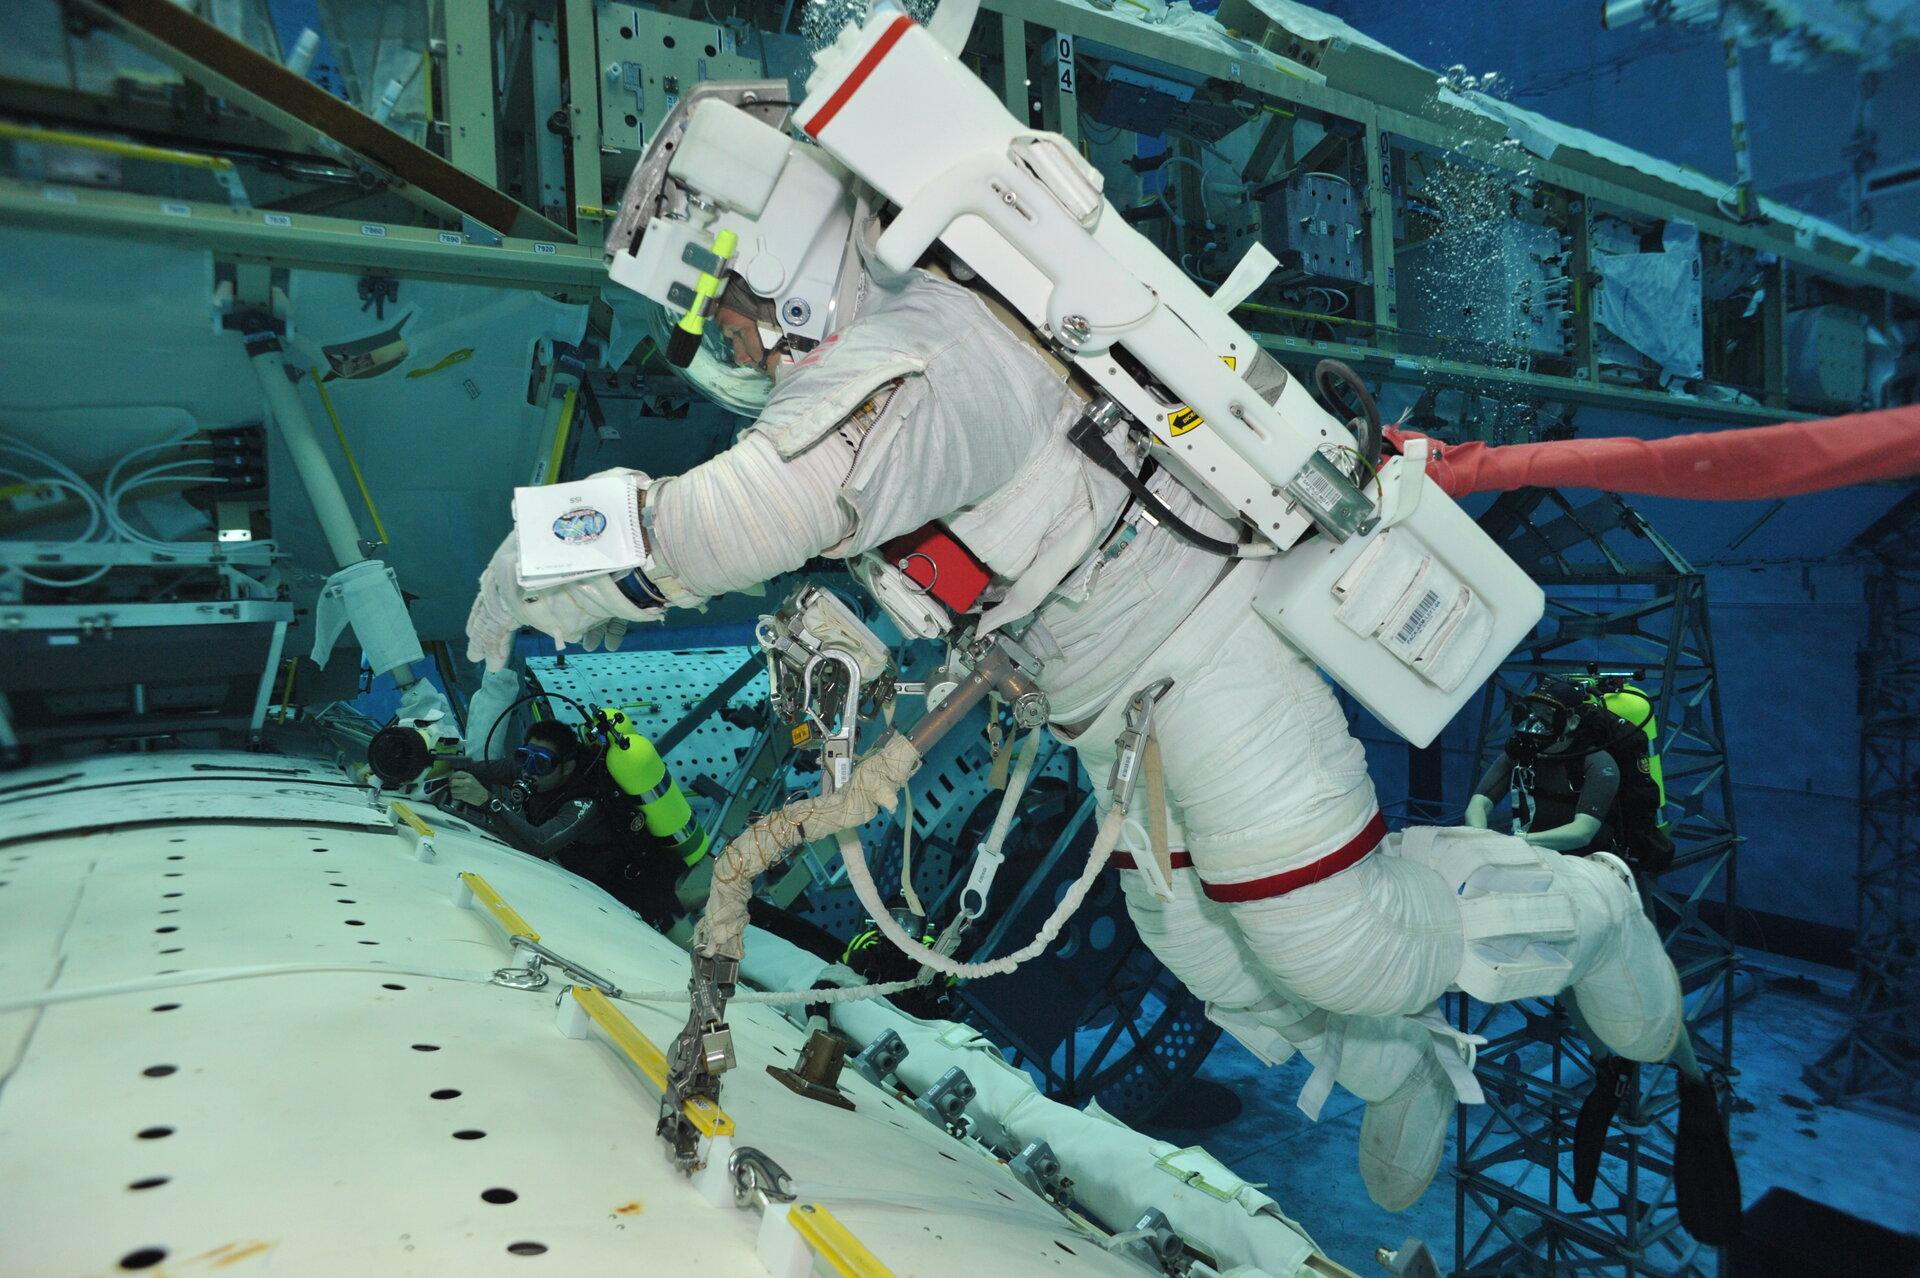 ESA astronaut Alexander Gerst training for spacewalks in the Neutral Buoyancy Facility.